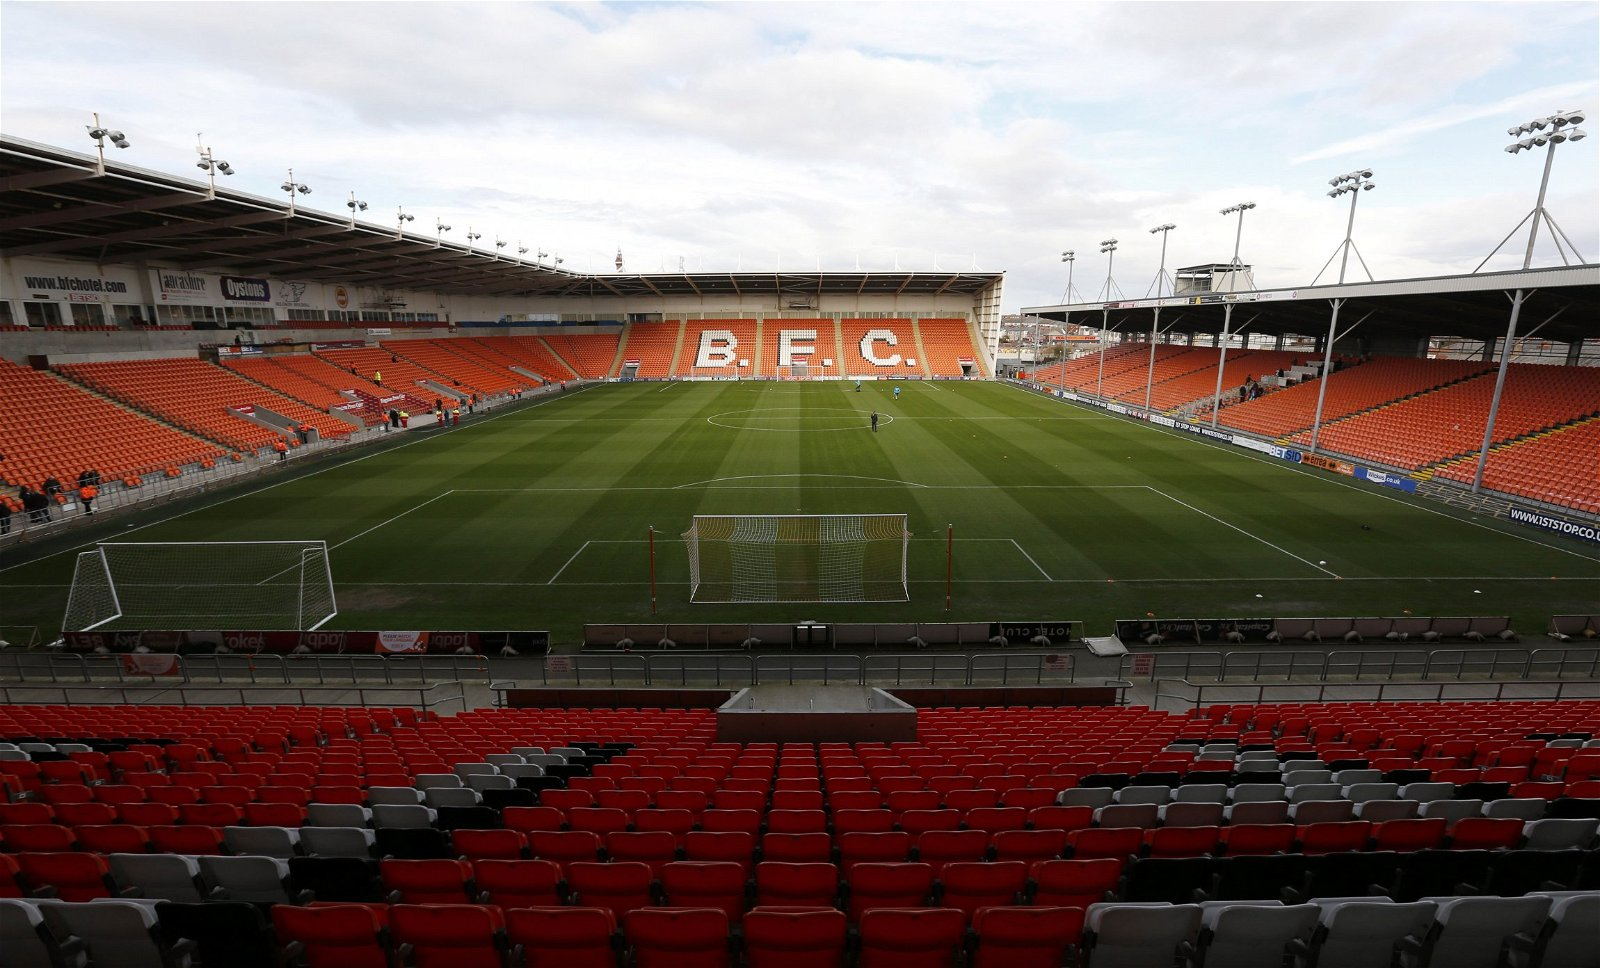 General view of Bloomfield Road